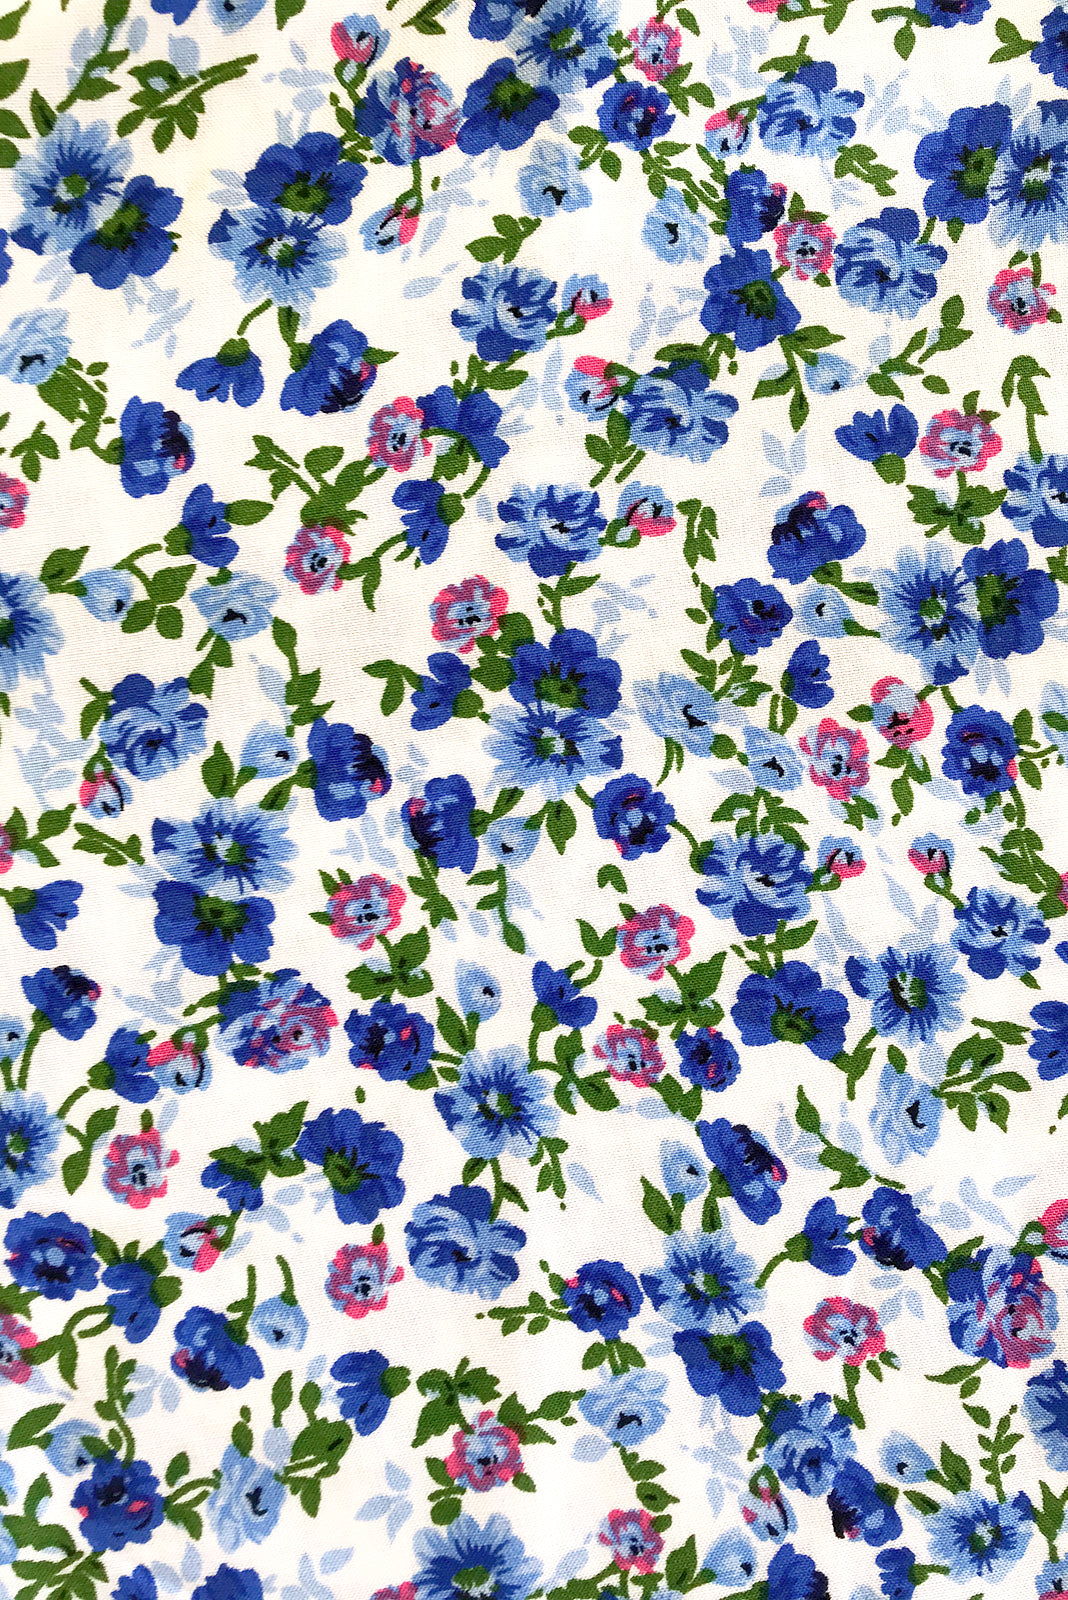 Fabric swatch of Lizzie Delta white Dress featuring 100% rayon in white base with gorgeous blue floral print.